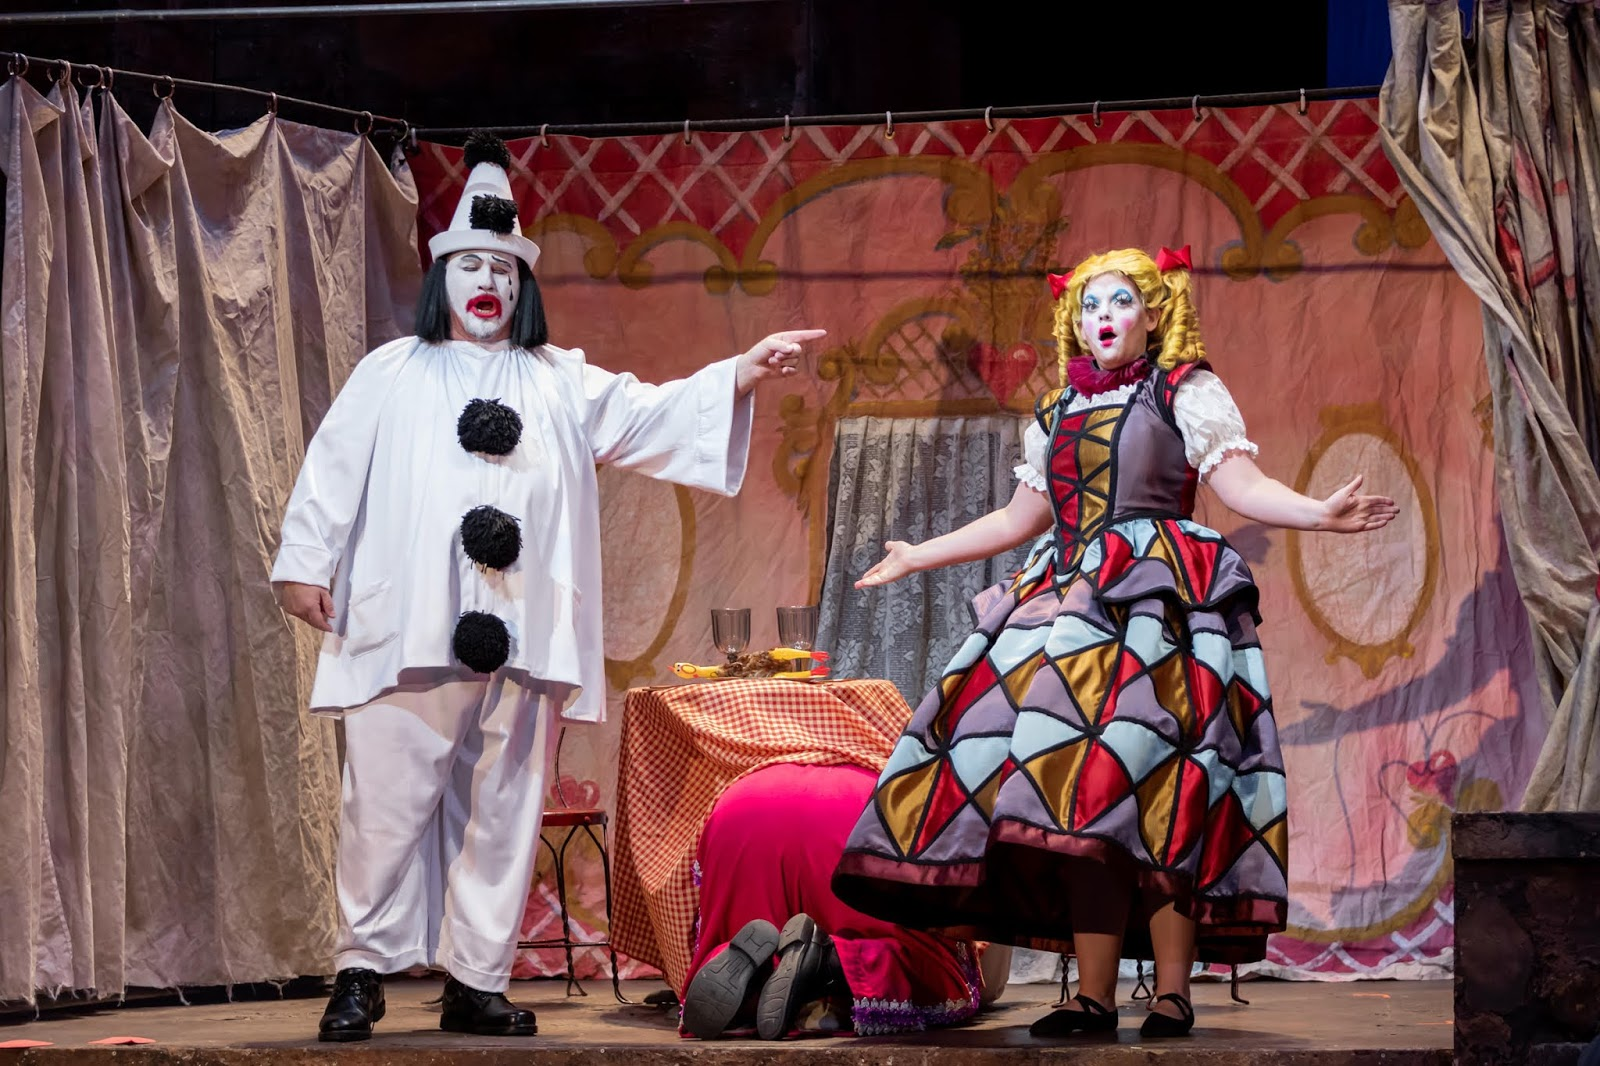 IN REVIEW: (from left to right) tenor CARL TANNER as Canio, baritone KIDON CHOI as Tonio (hiding under table), and soprano MELINDA WHITTINGTON as Nedda in North Carolina Opera's January 2020 production of Ruggero Leoncavallo's PAGLIACCI [Photograph by Eric Waters, © by North Carolina Opera]